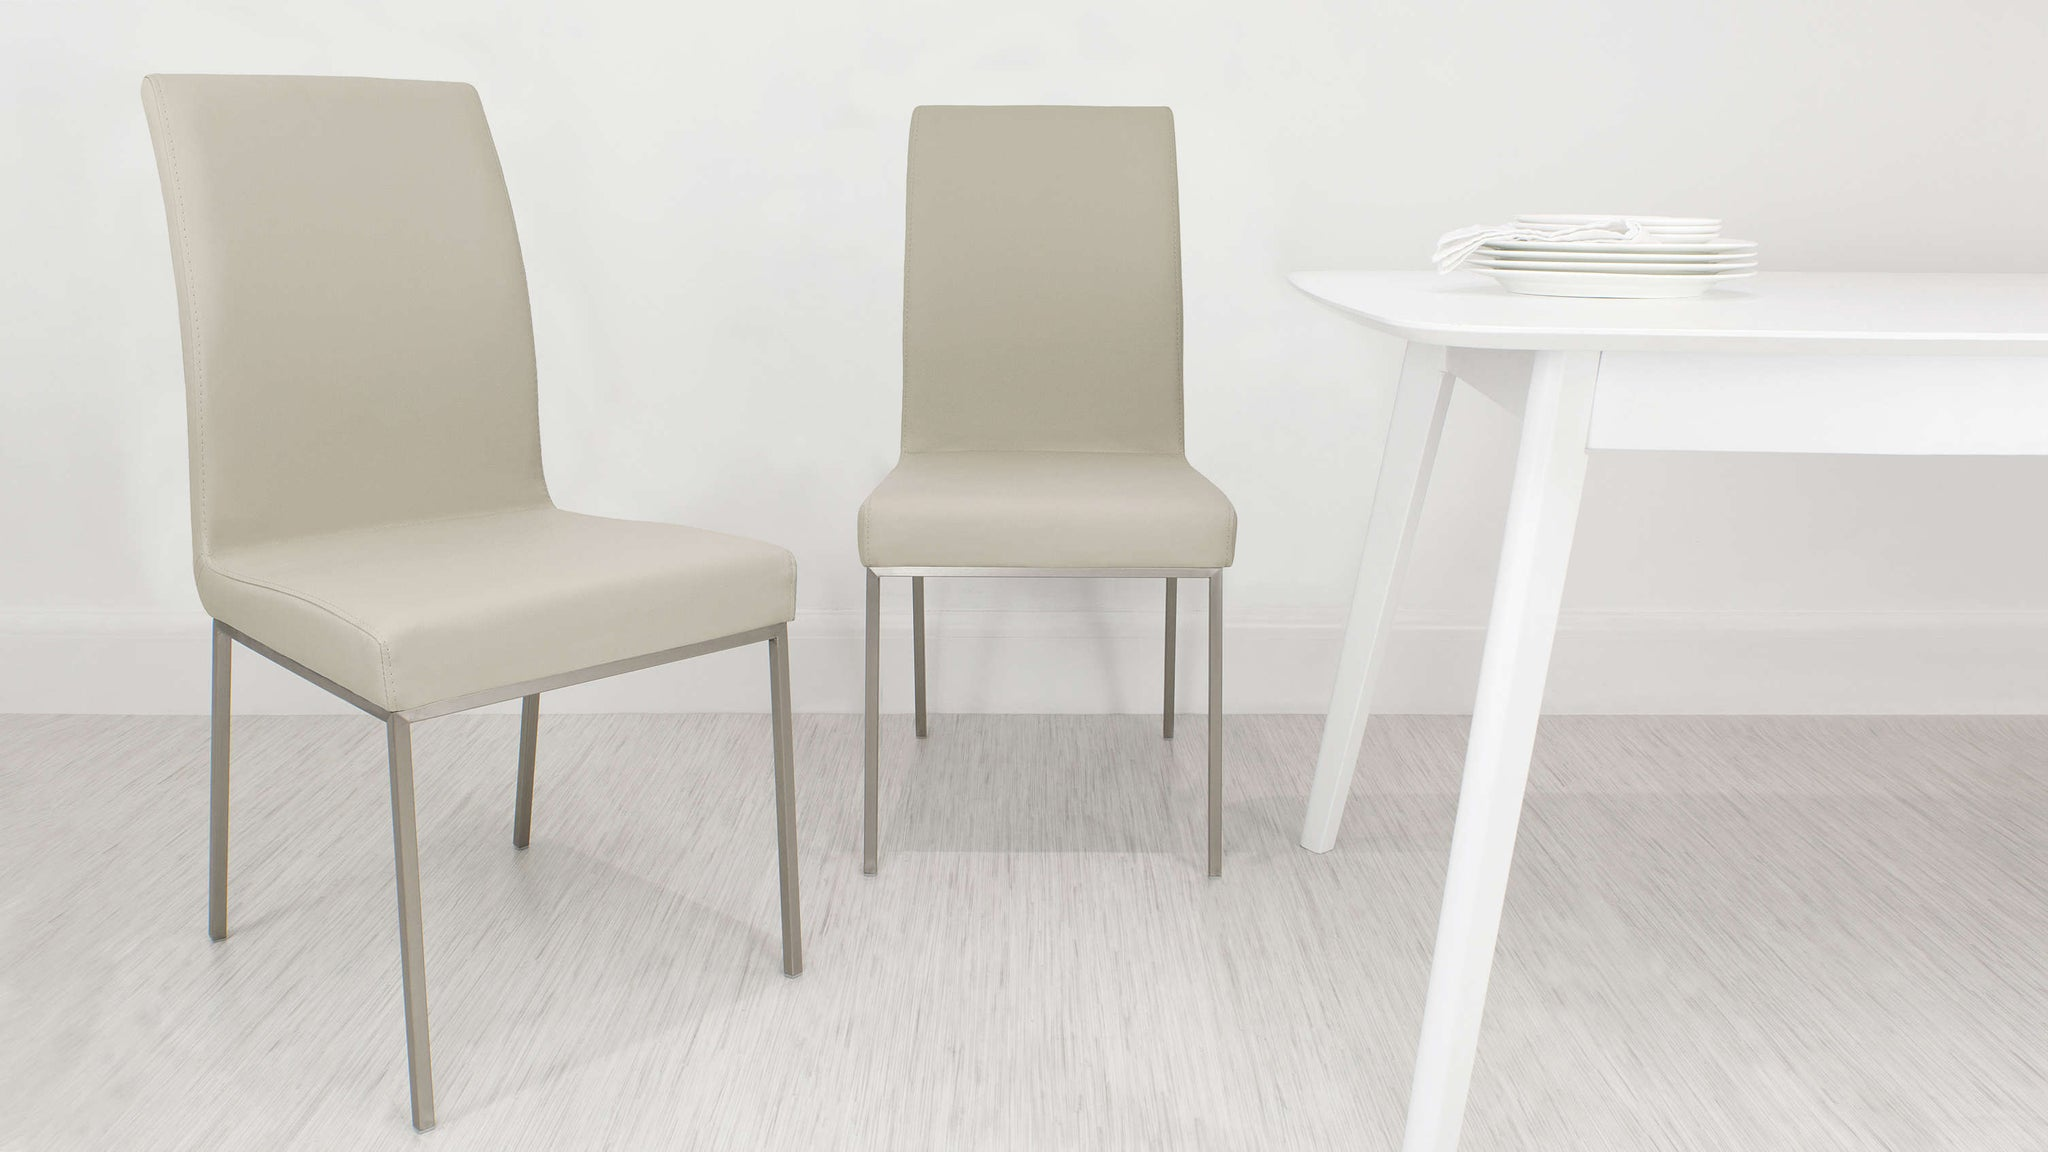 Modern Beige Dining Chairs UK